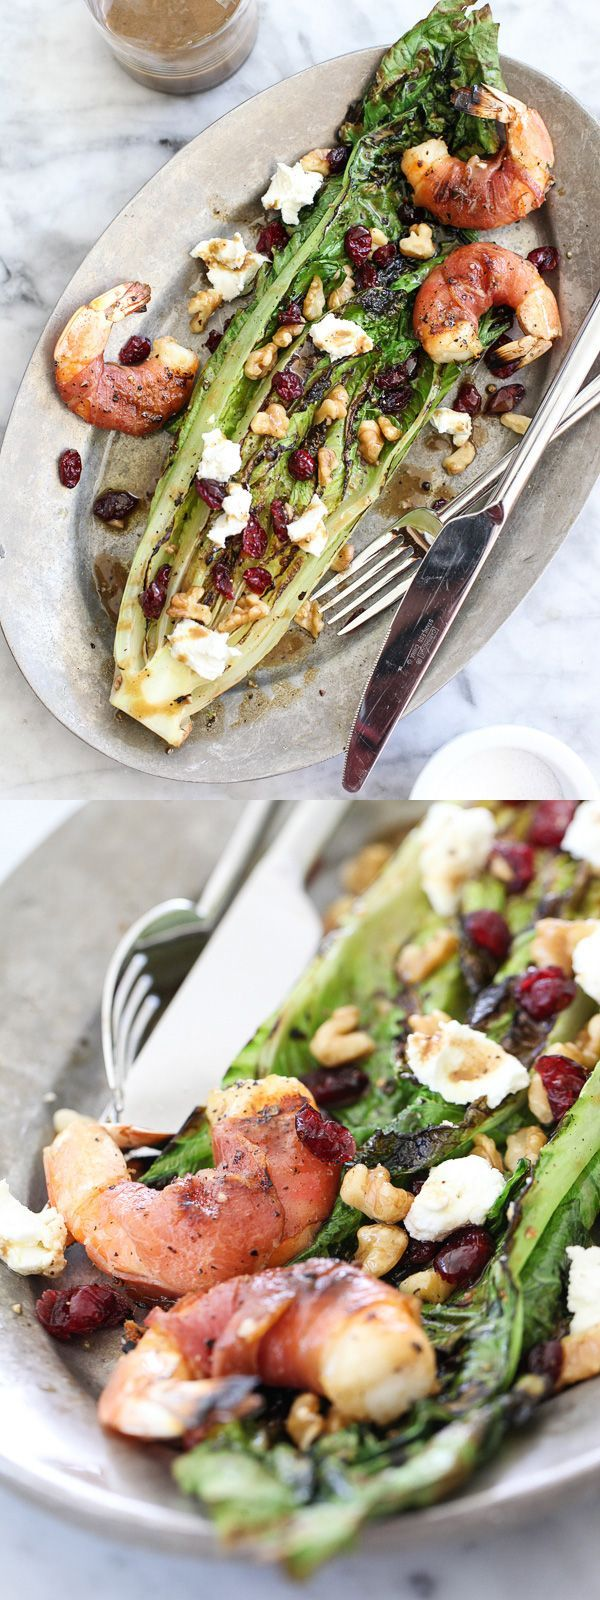 Grilled Romaine Salad with Prosciutto Wrapped Shrimp | foodiecrush.com